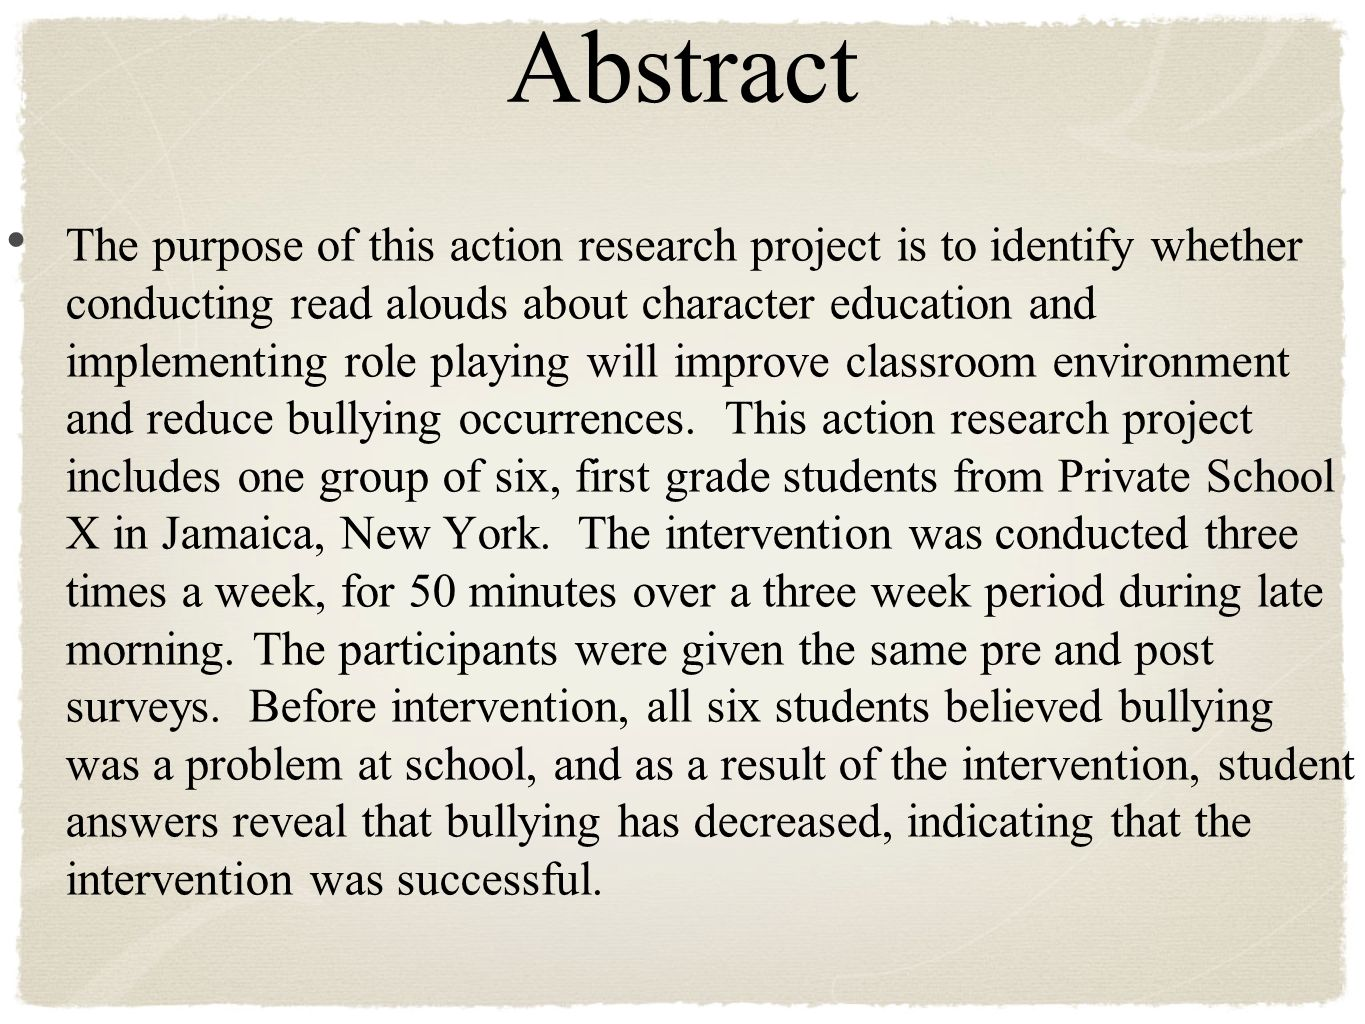 003 Abstract Research Paper About Formidable Bullying Full